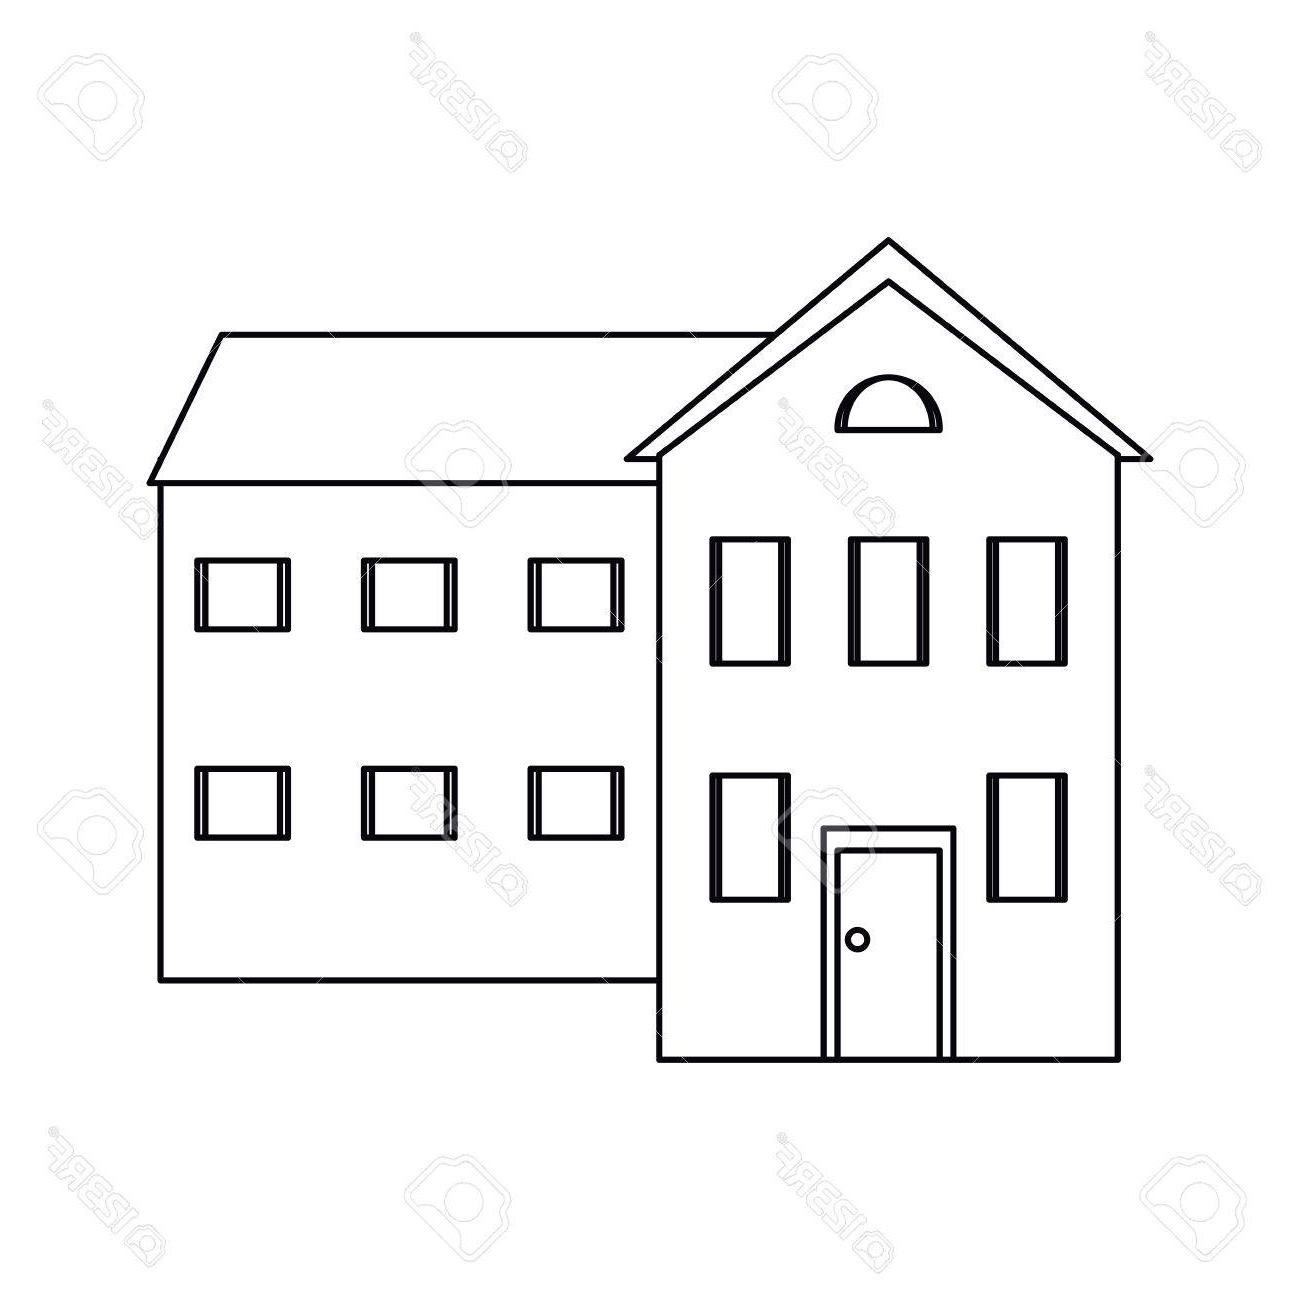 House Outline Vector